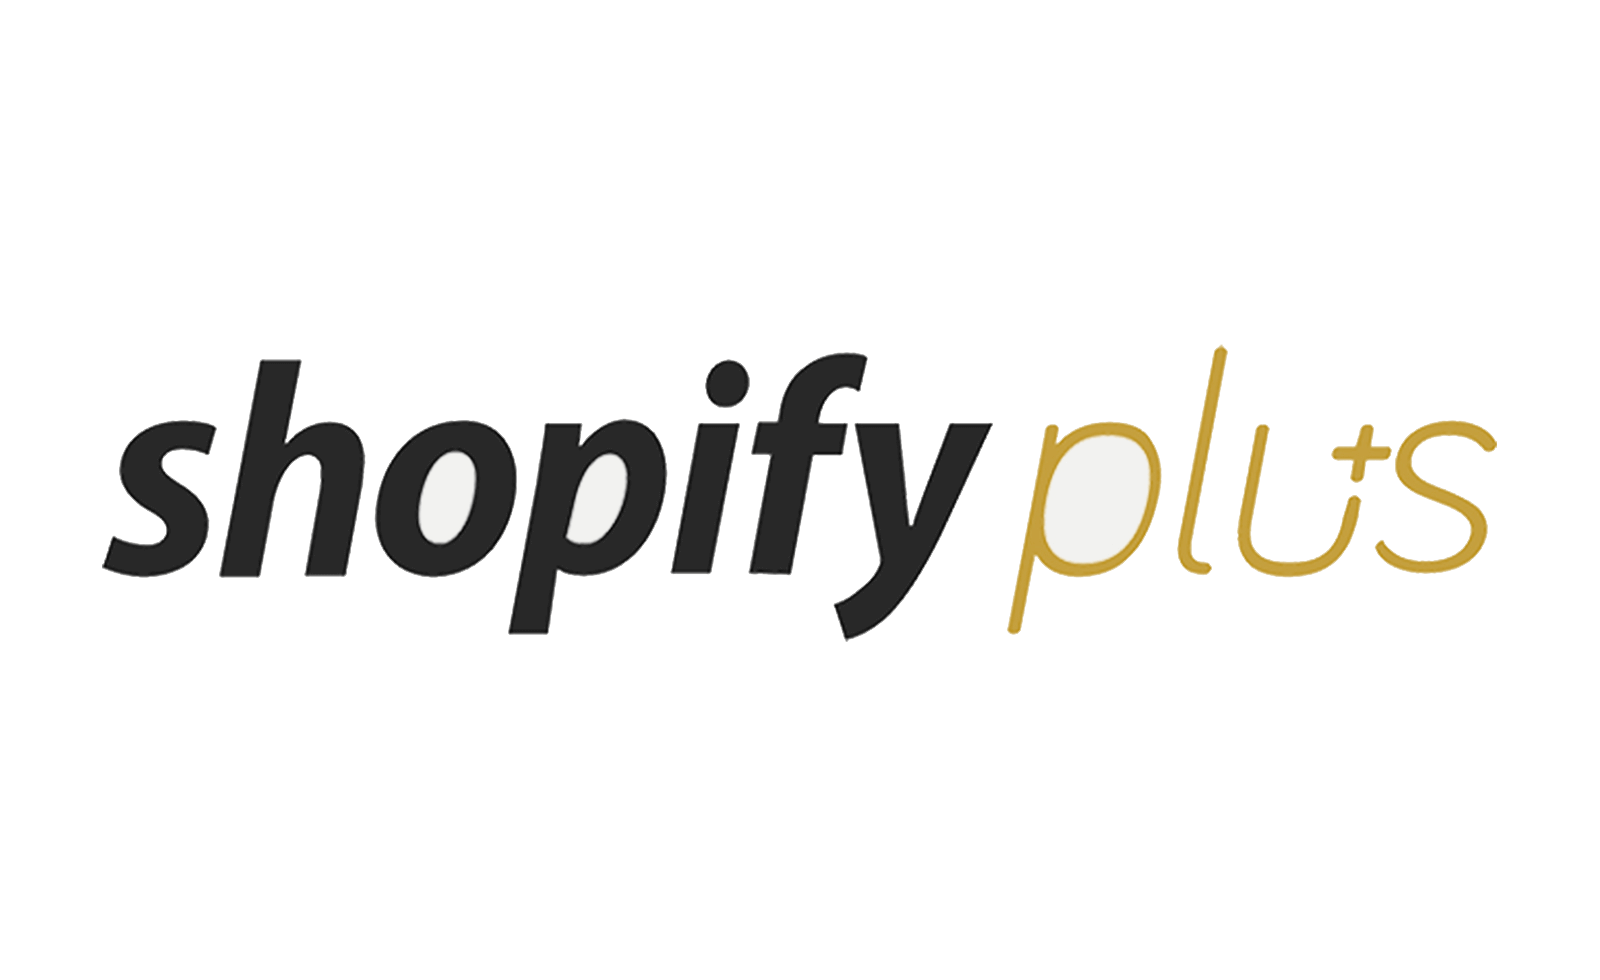 Shopify plus e-commerce platform